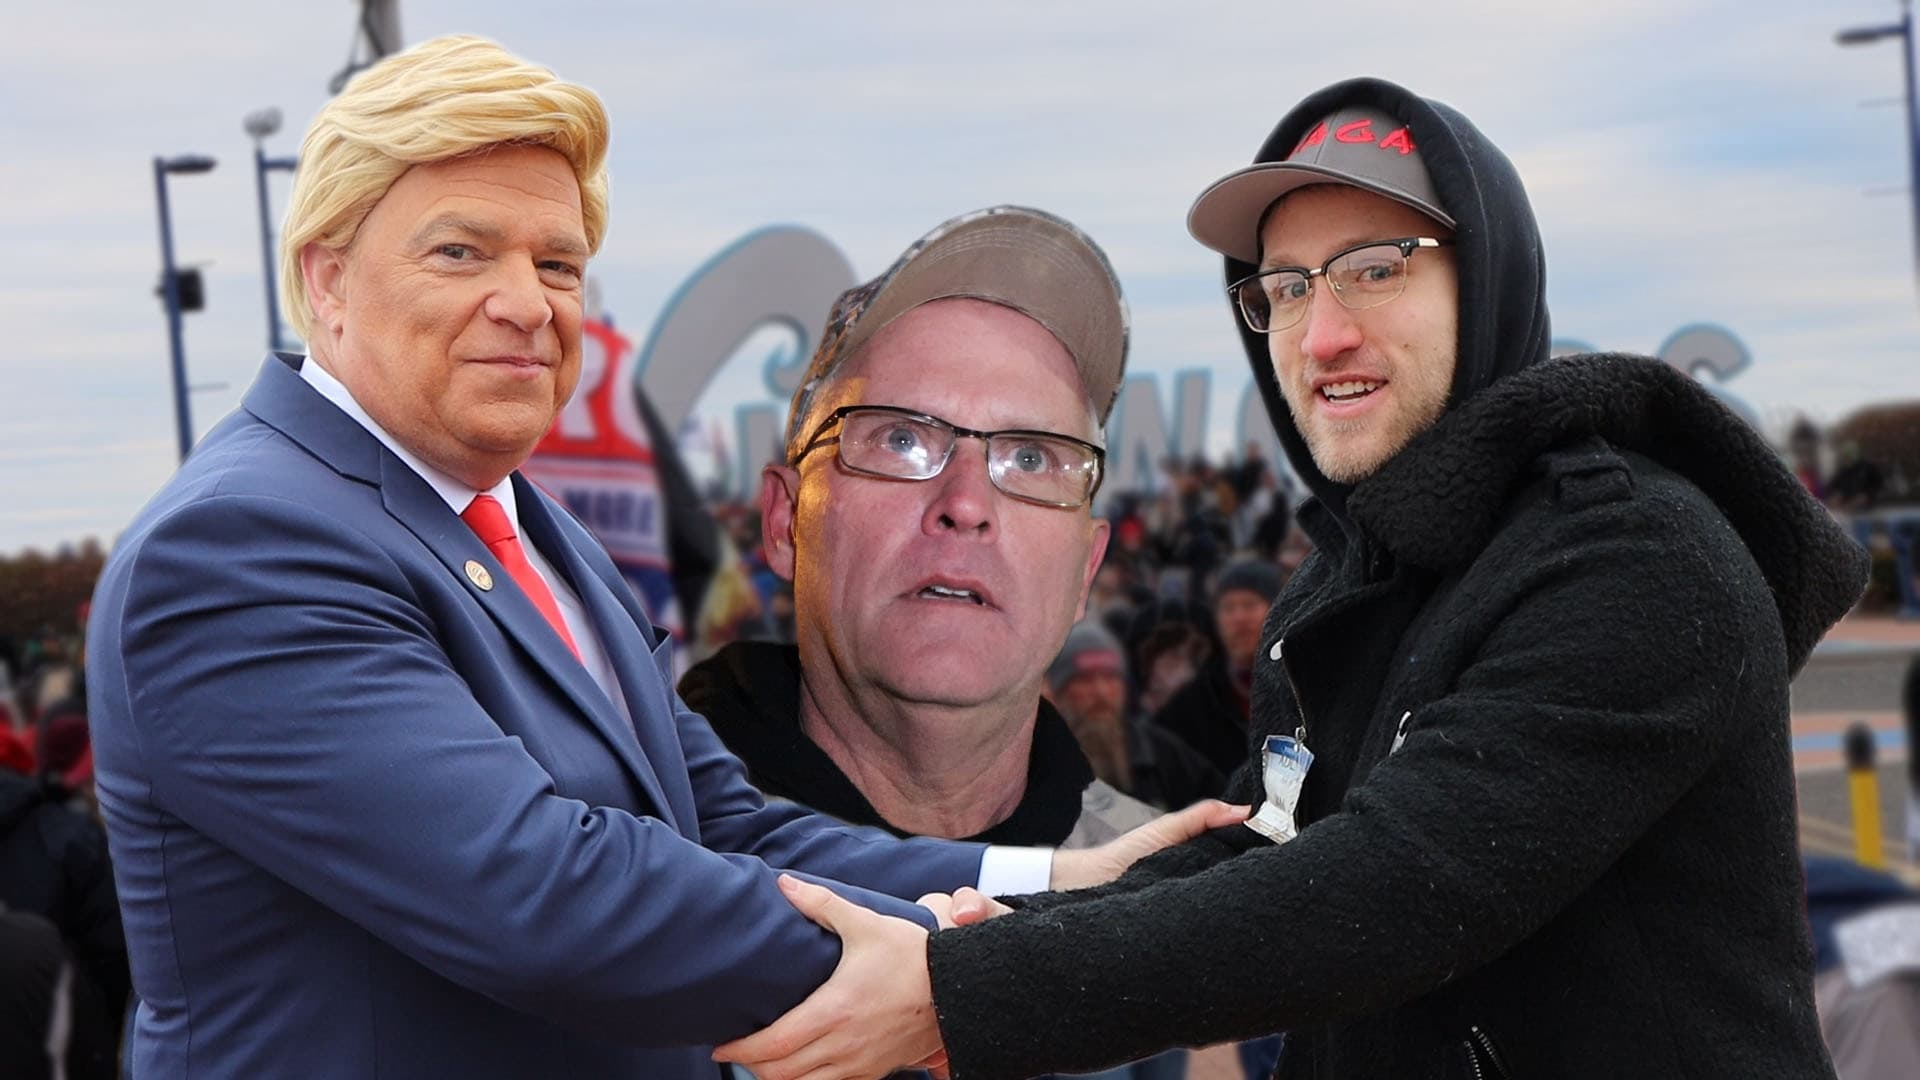 CONFRONTING PSYCHO DAD AT THE TRUMP RALLY!